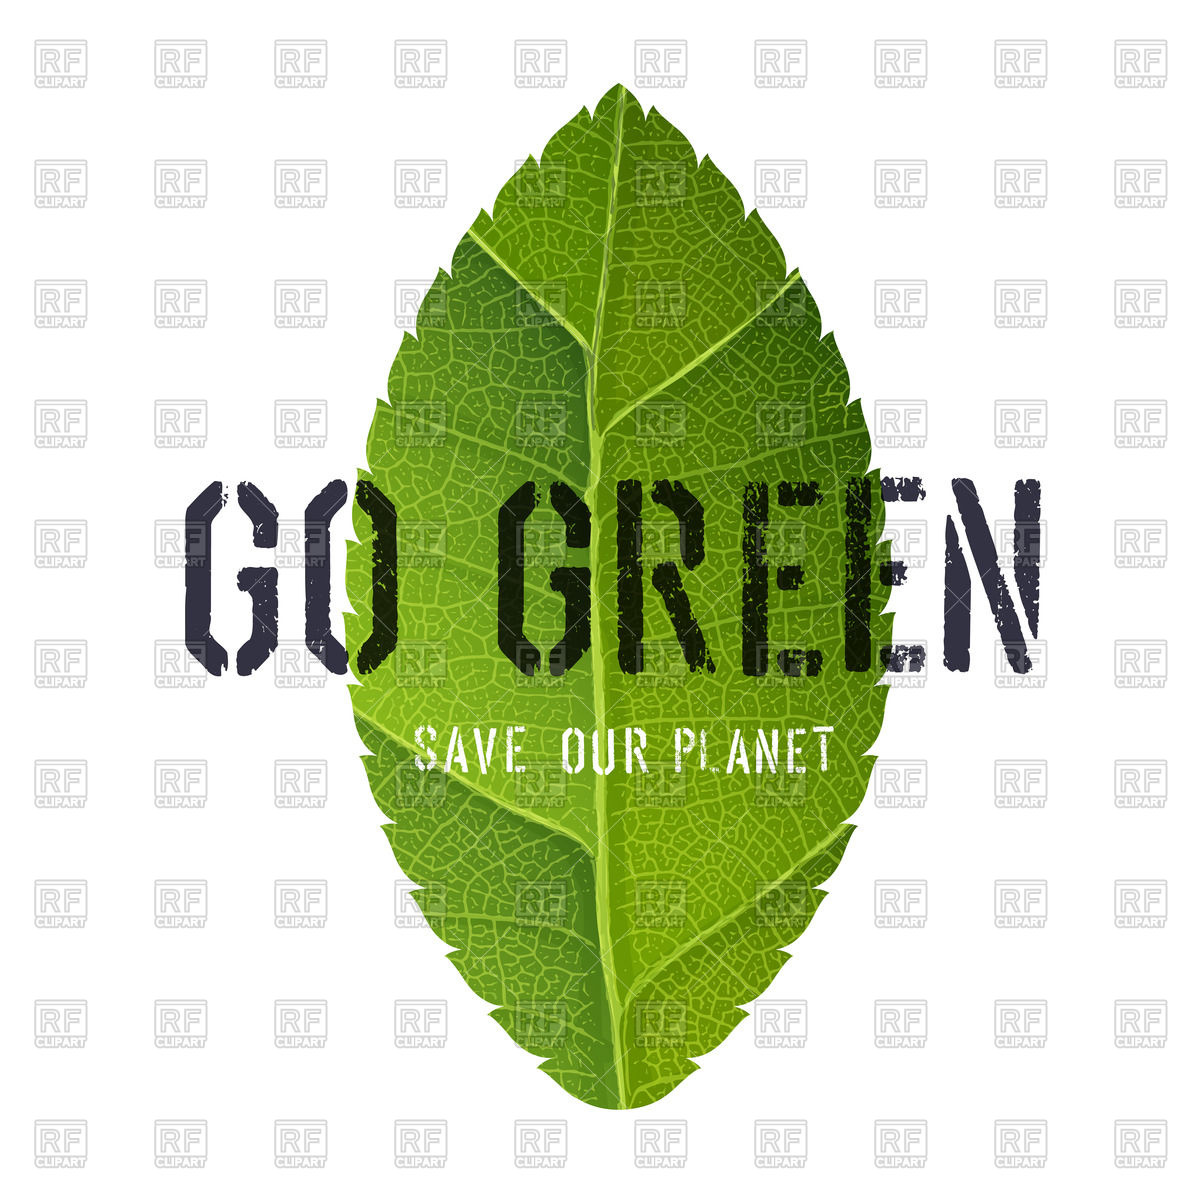 Go Green poster with leaf symbol Stock Vector Image.